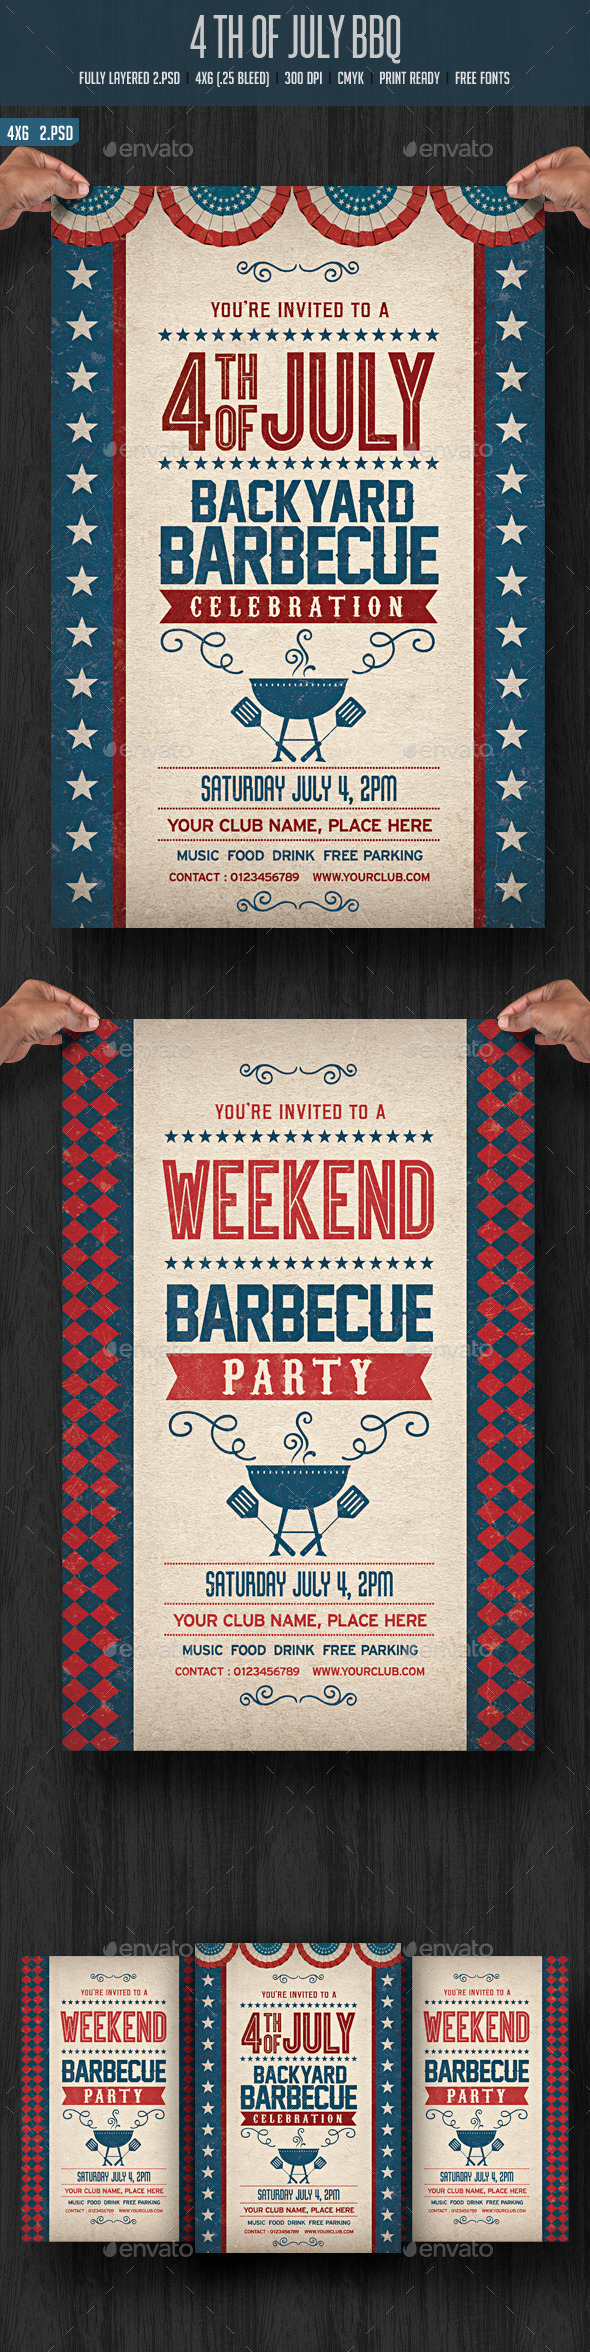 GraphicRiver 4th July BBQ Flyer 11638473